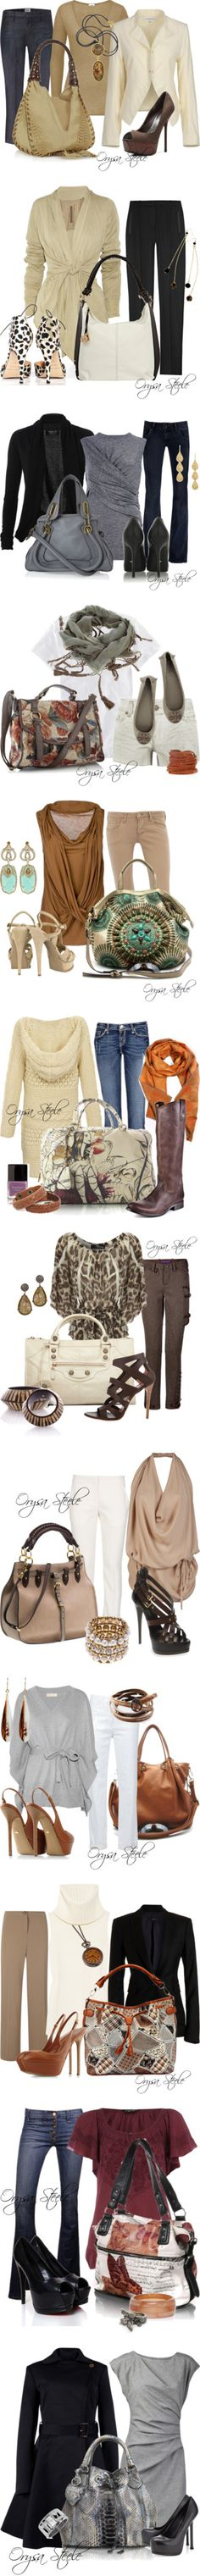 Great Looks for Fall